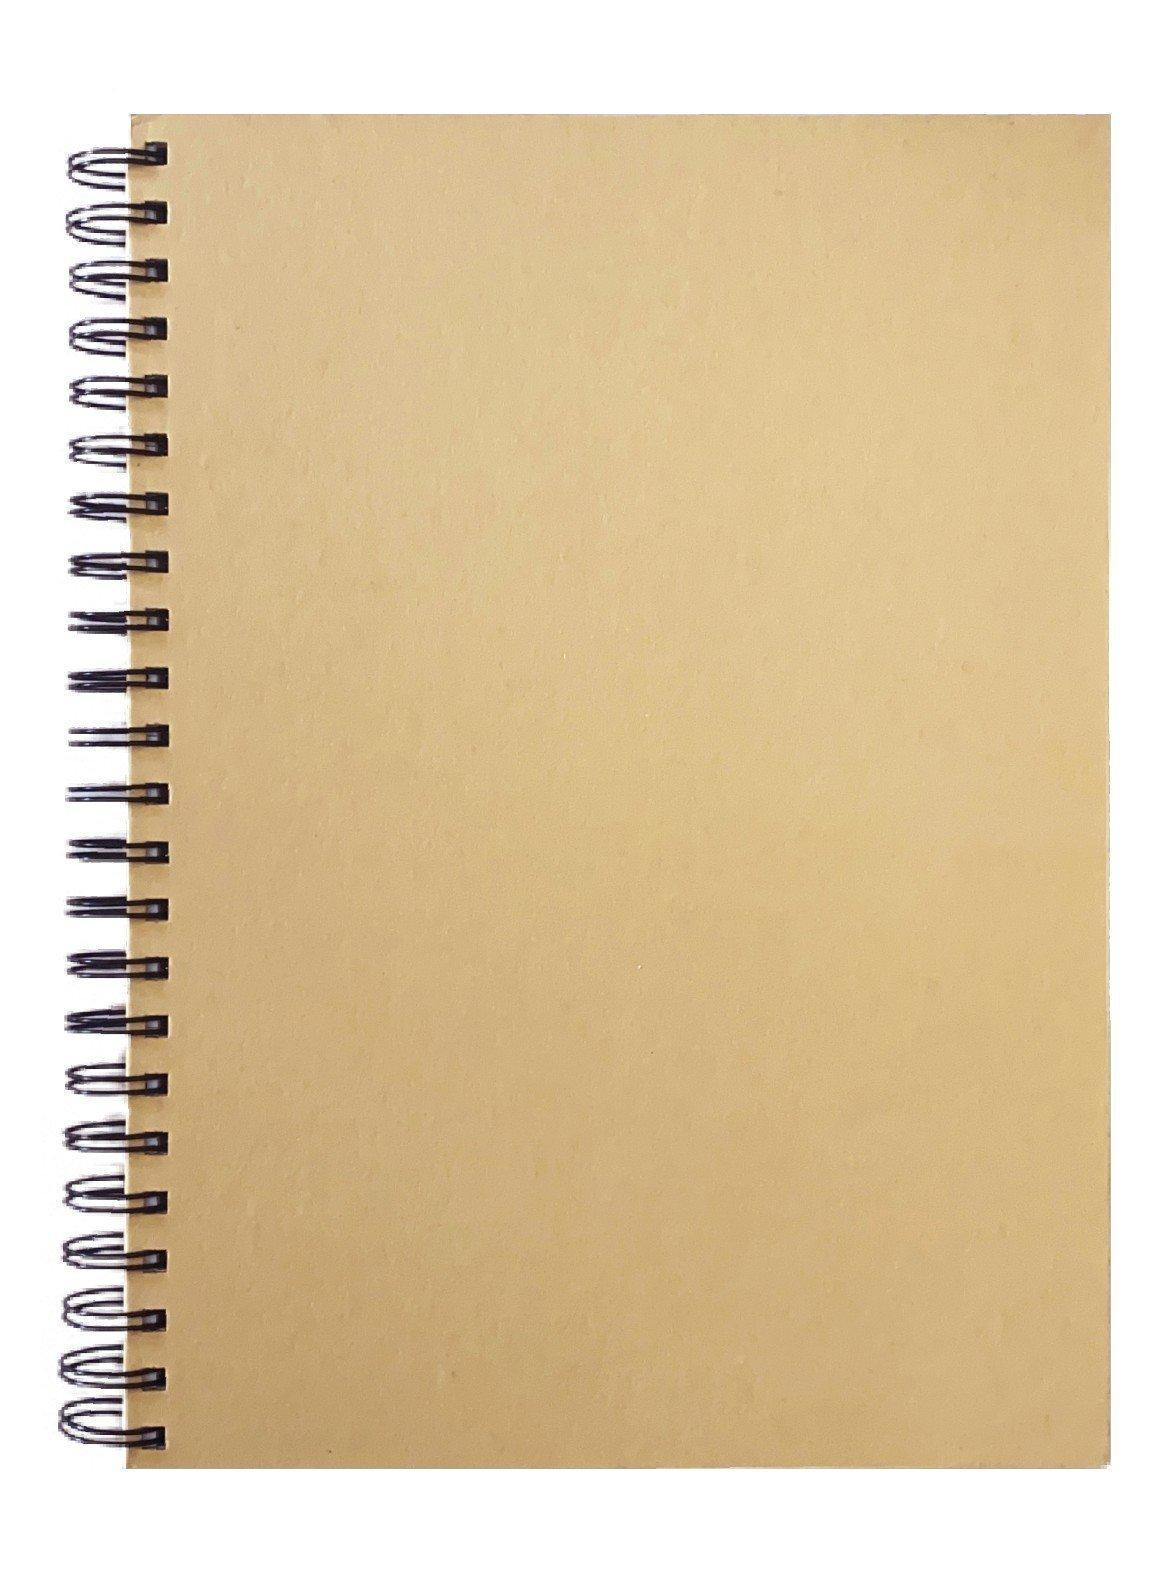 Golden Prime -  NATURAL KRAFT - PERFORATED - A4 SIDE WIRE-O 15O SHEETS